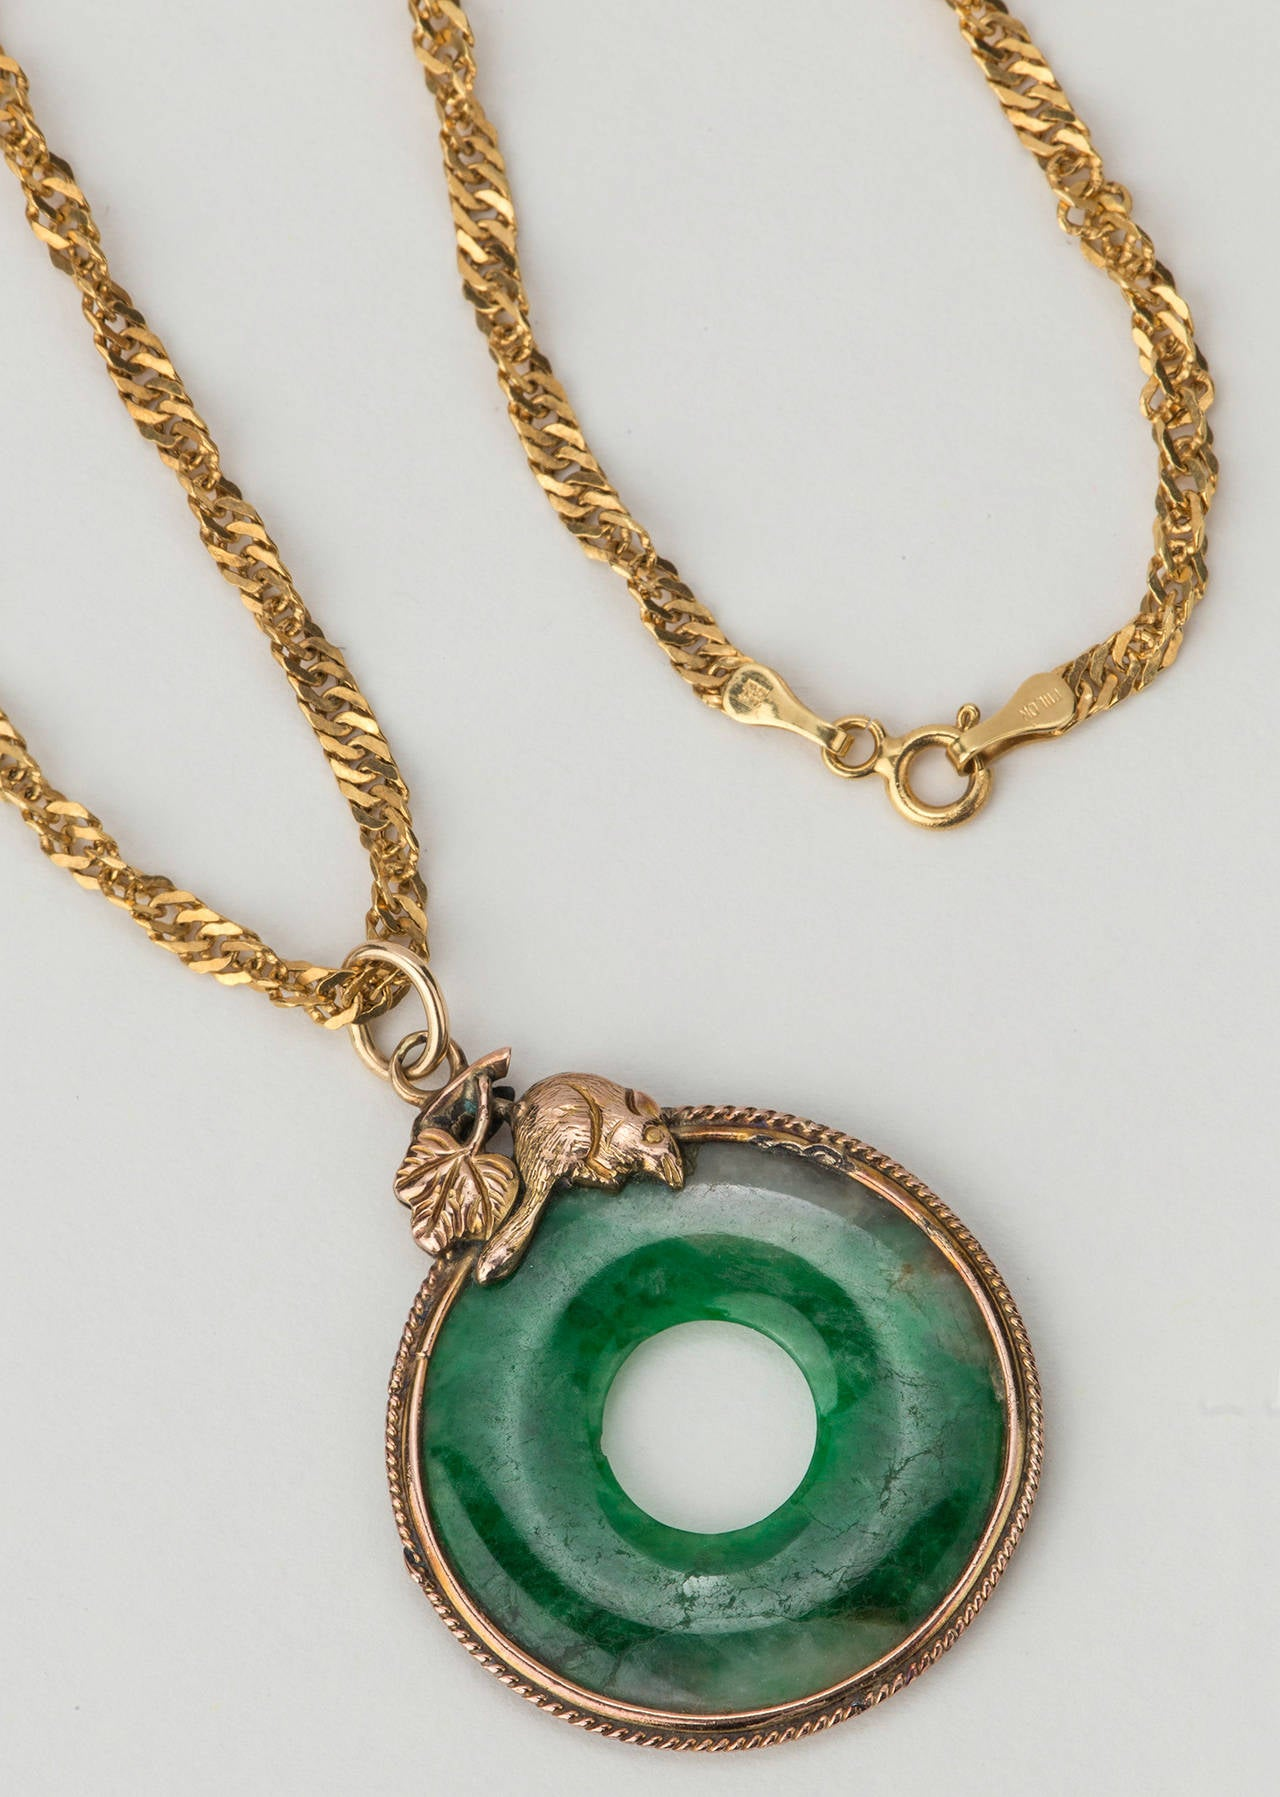 Chinese Rat And Jade Pendant Necklace At 1stdibs